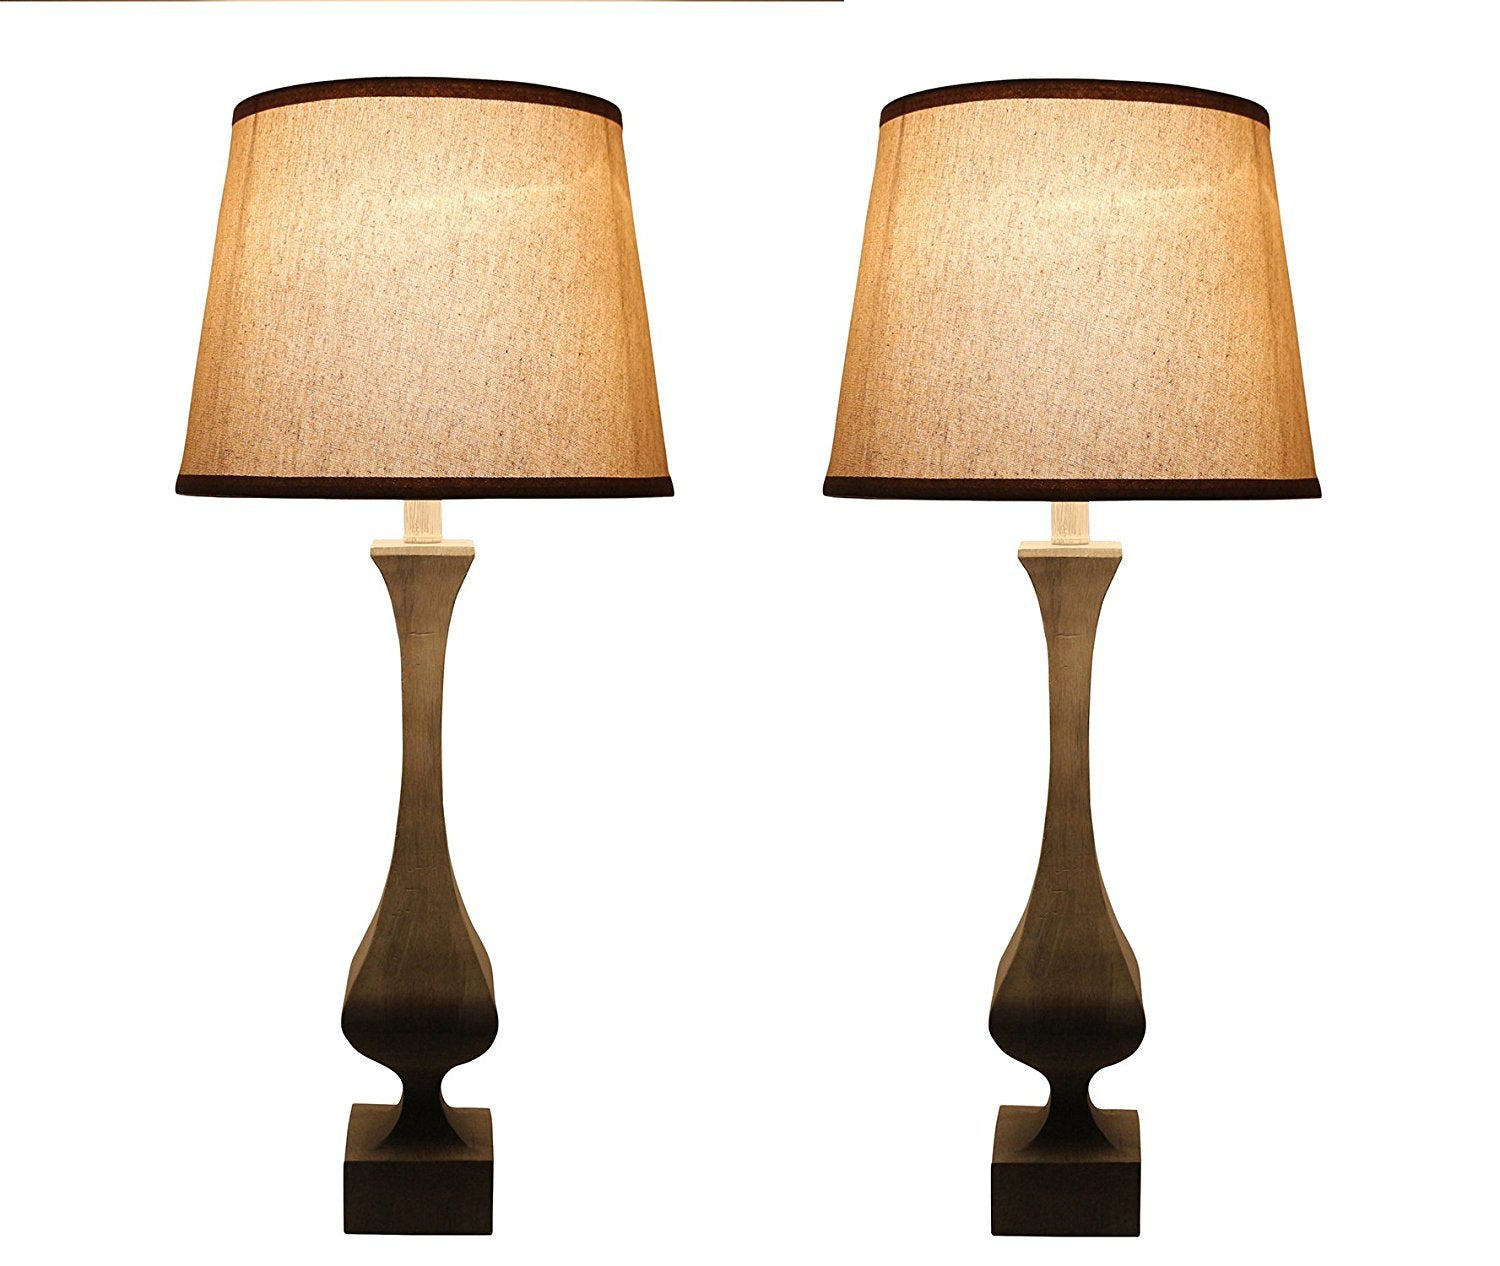 Fairview Table Lamps, 30-inch Tall, Set of 2